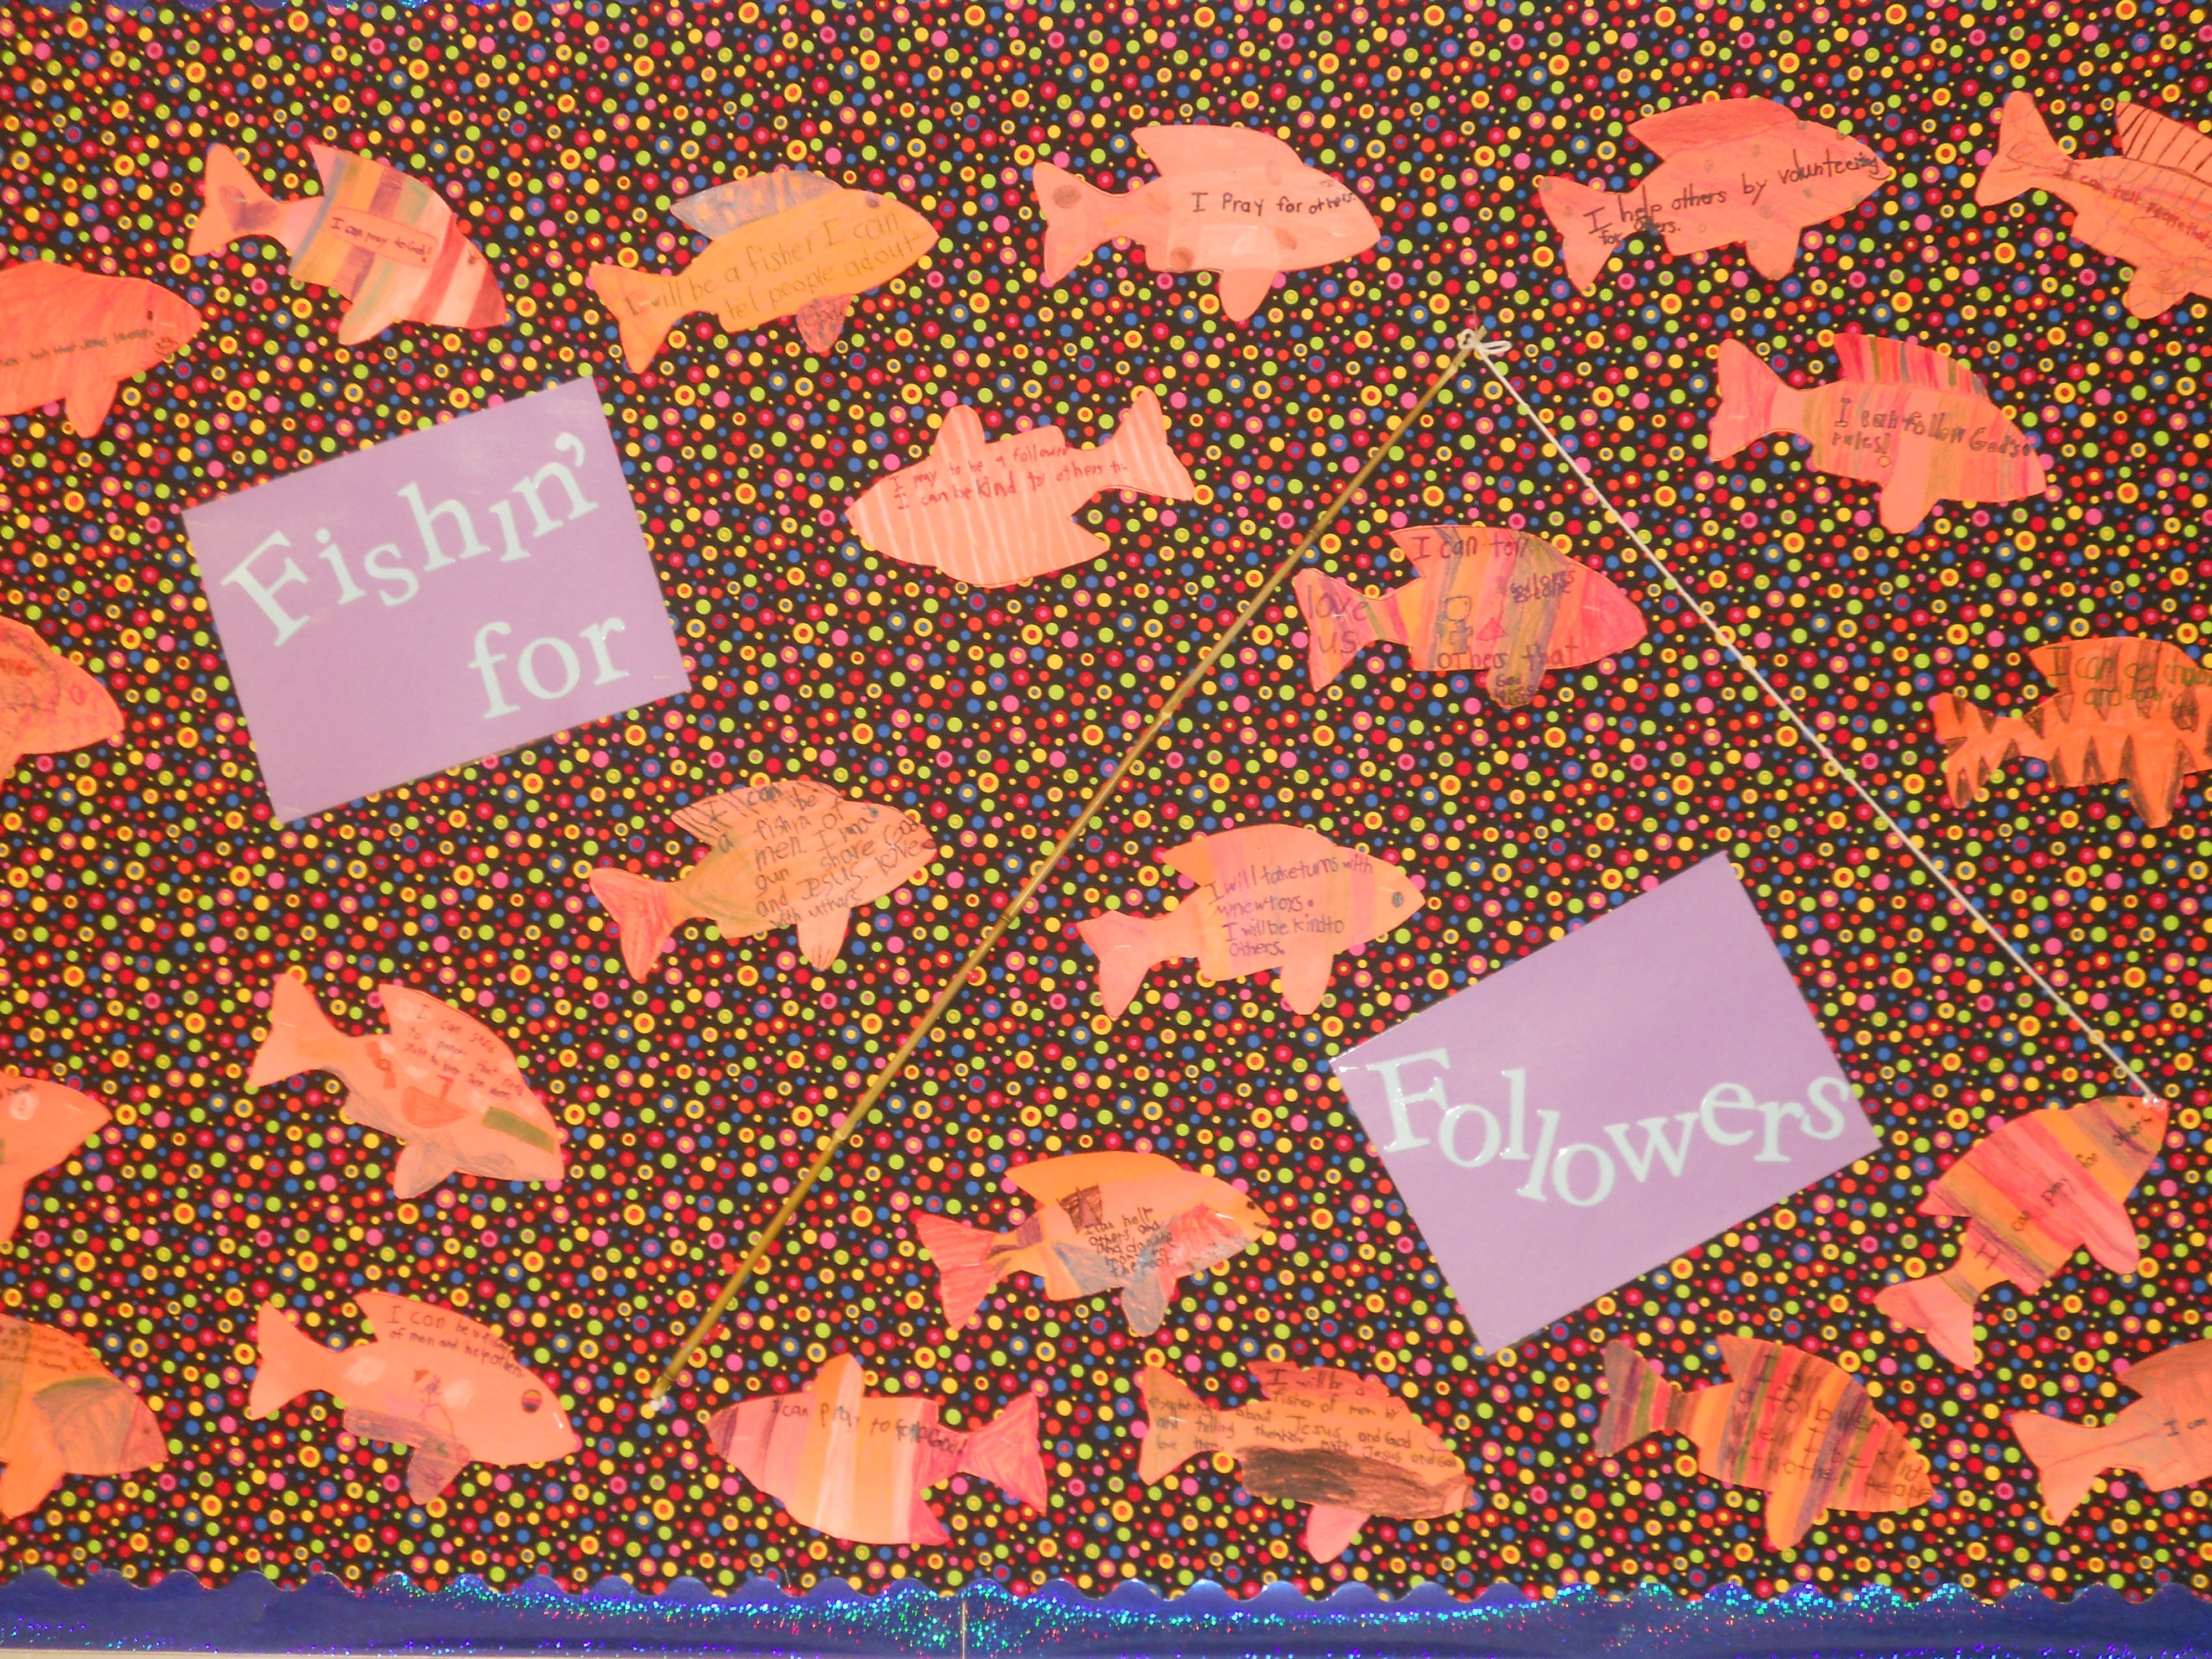 Fishin' for Followers bulletin board; fish include a way each student can be a good follower